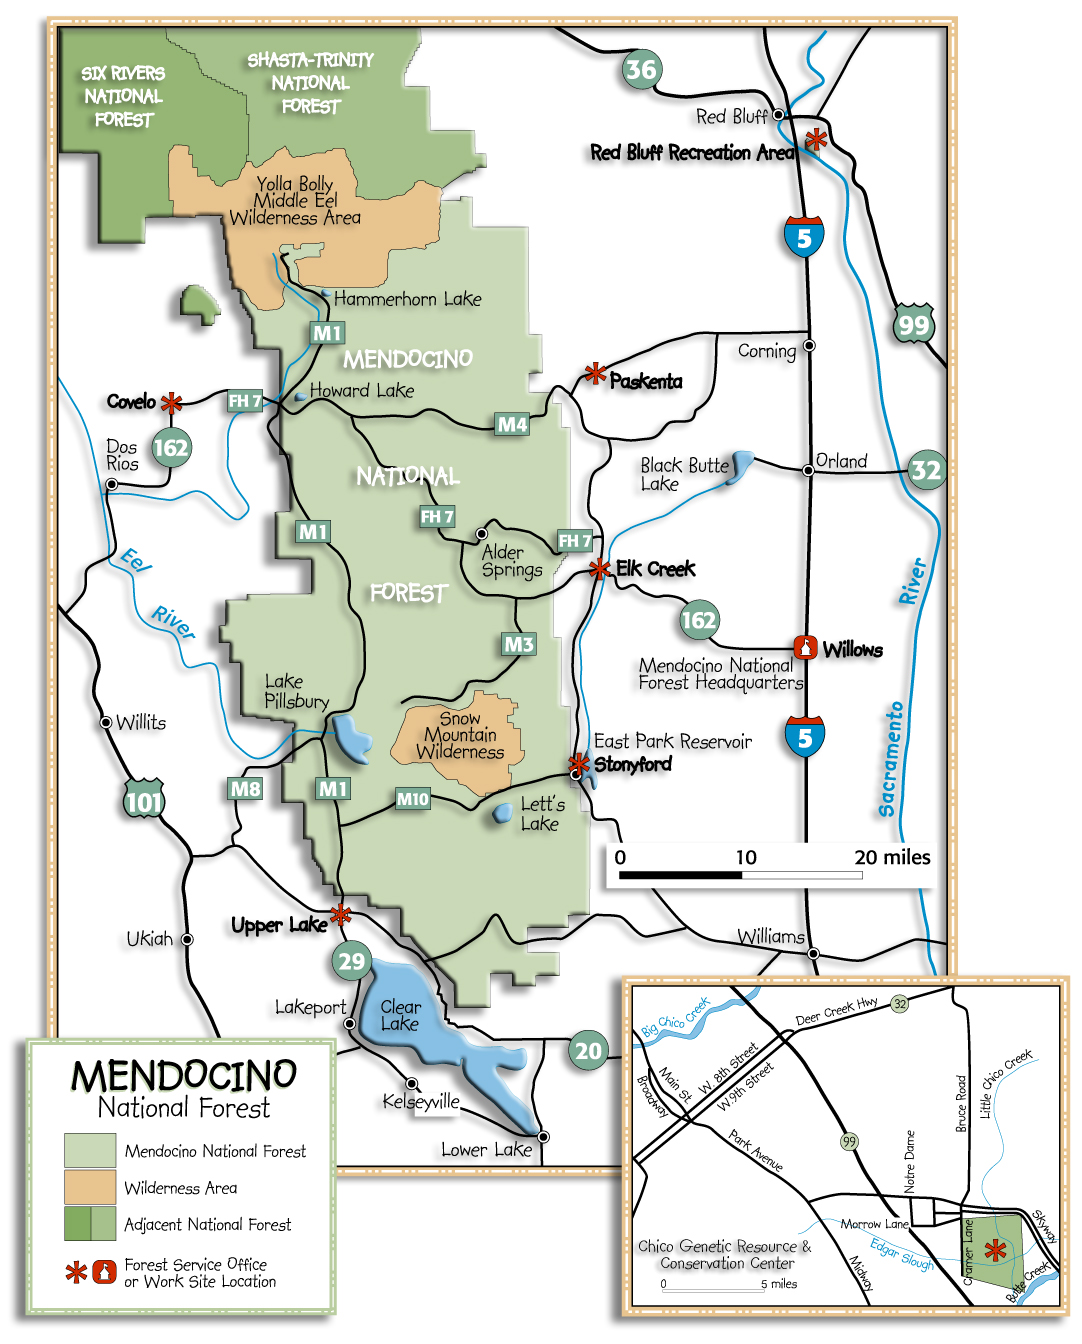 Mendocino National Forest Maps Publications - Us forest service topo maps